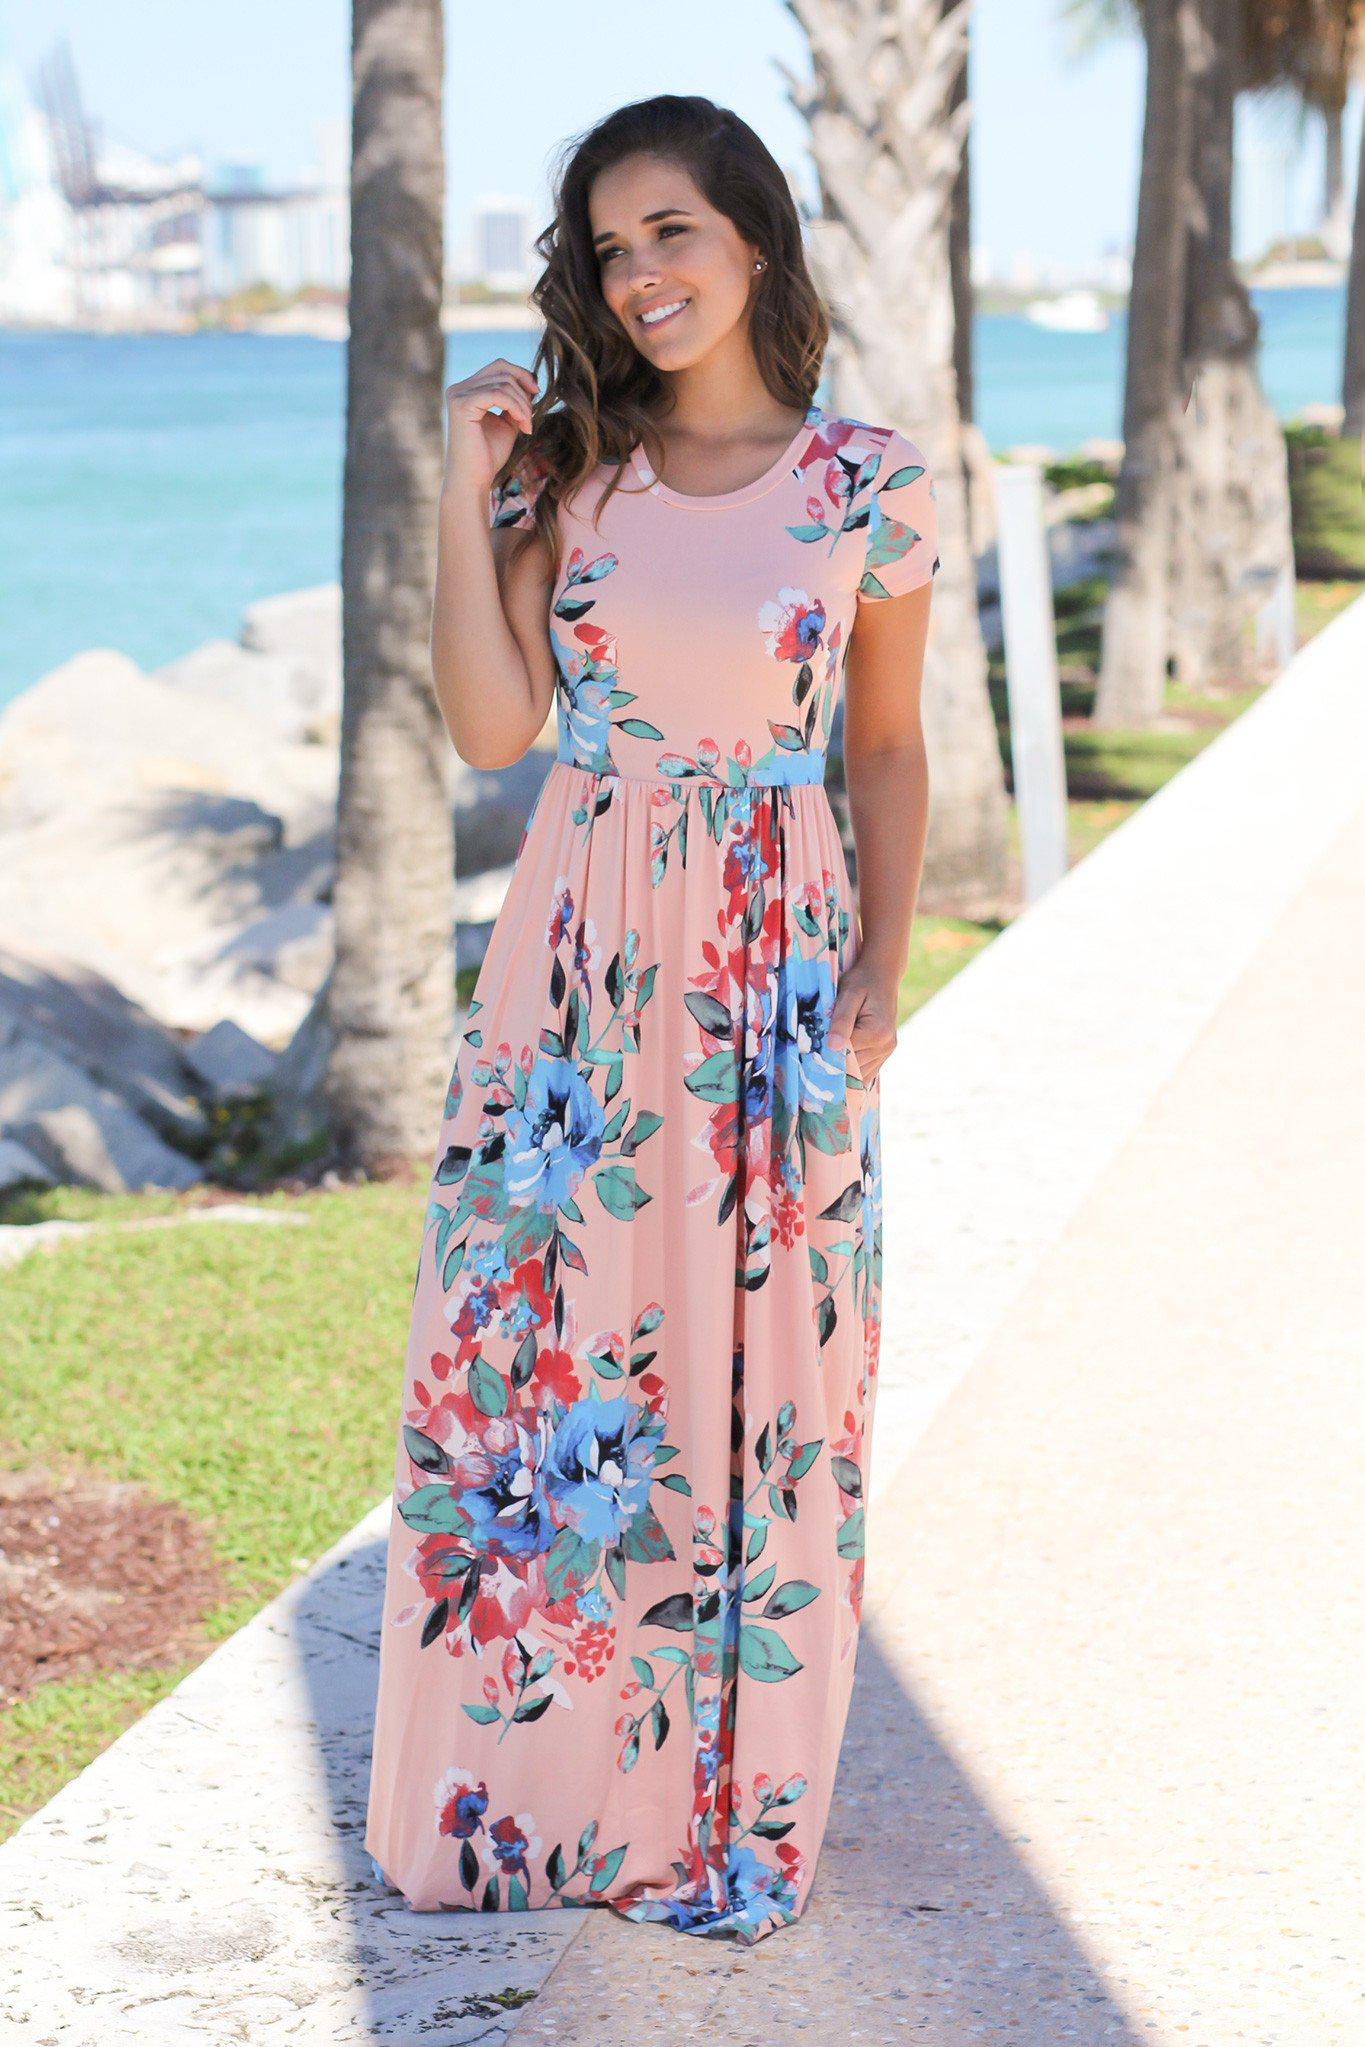 b8b01156a Floral Maxi Dress; Long Dresses; Blush and Blue Floral Maxi Dress with Short  Sleeves ...